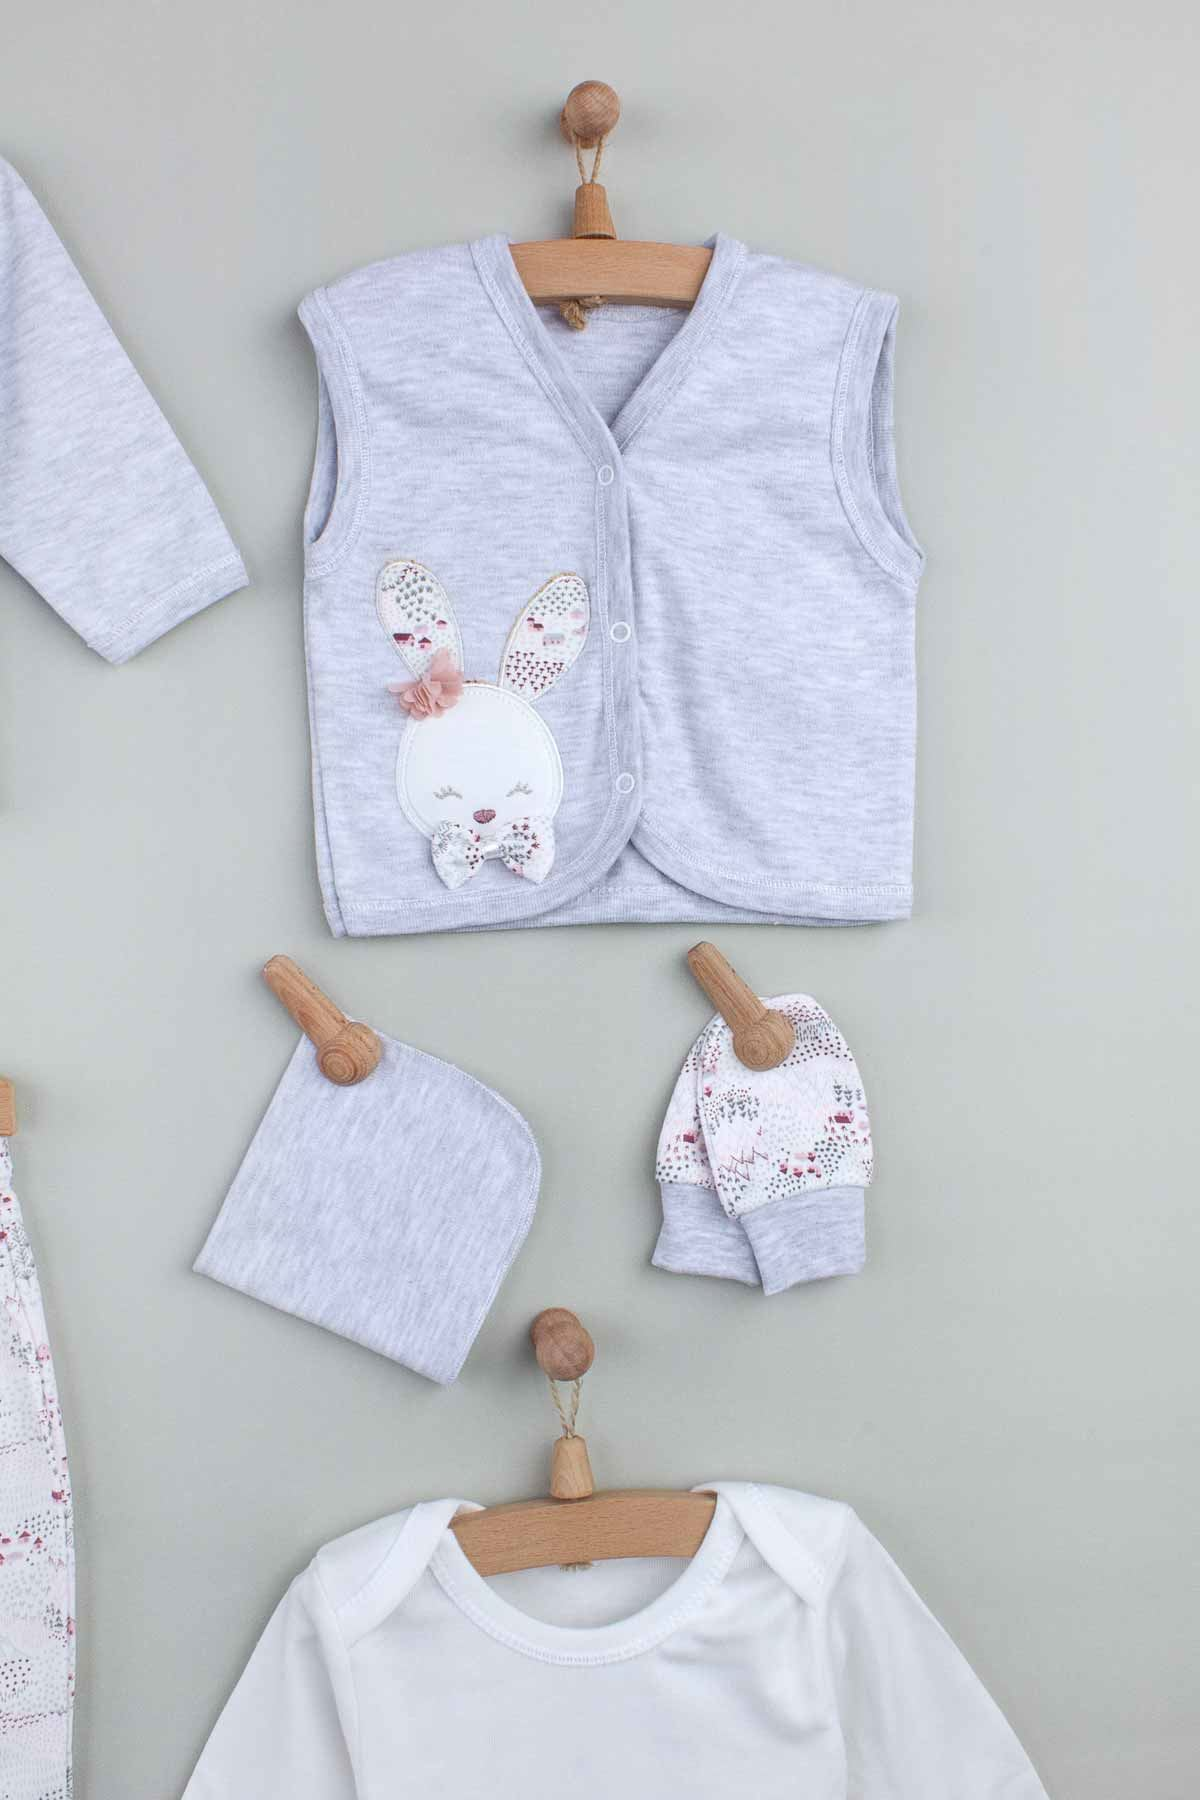 Gray baby girl newborn hospital outlet 10 piece set cute warm seasonal suit style models all babies need